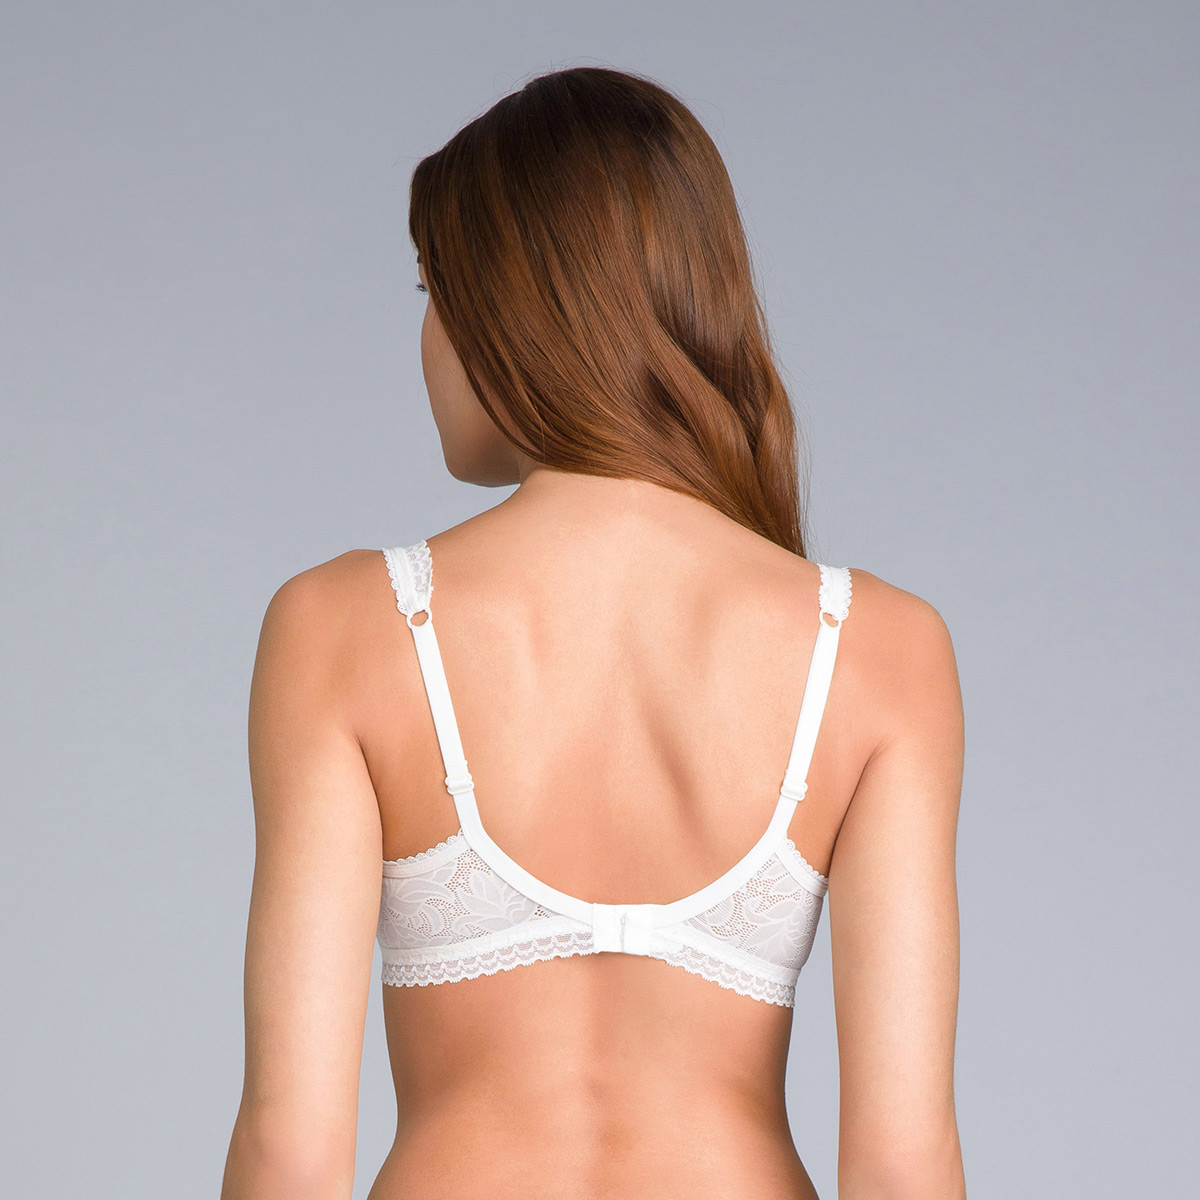 Sujetador invisible balconnet blanco marfil - Invisible Elegance, , PLAYTEX